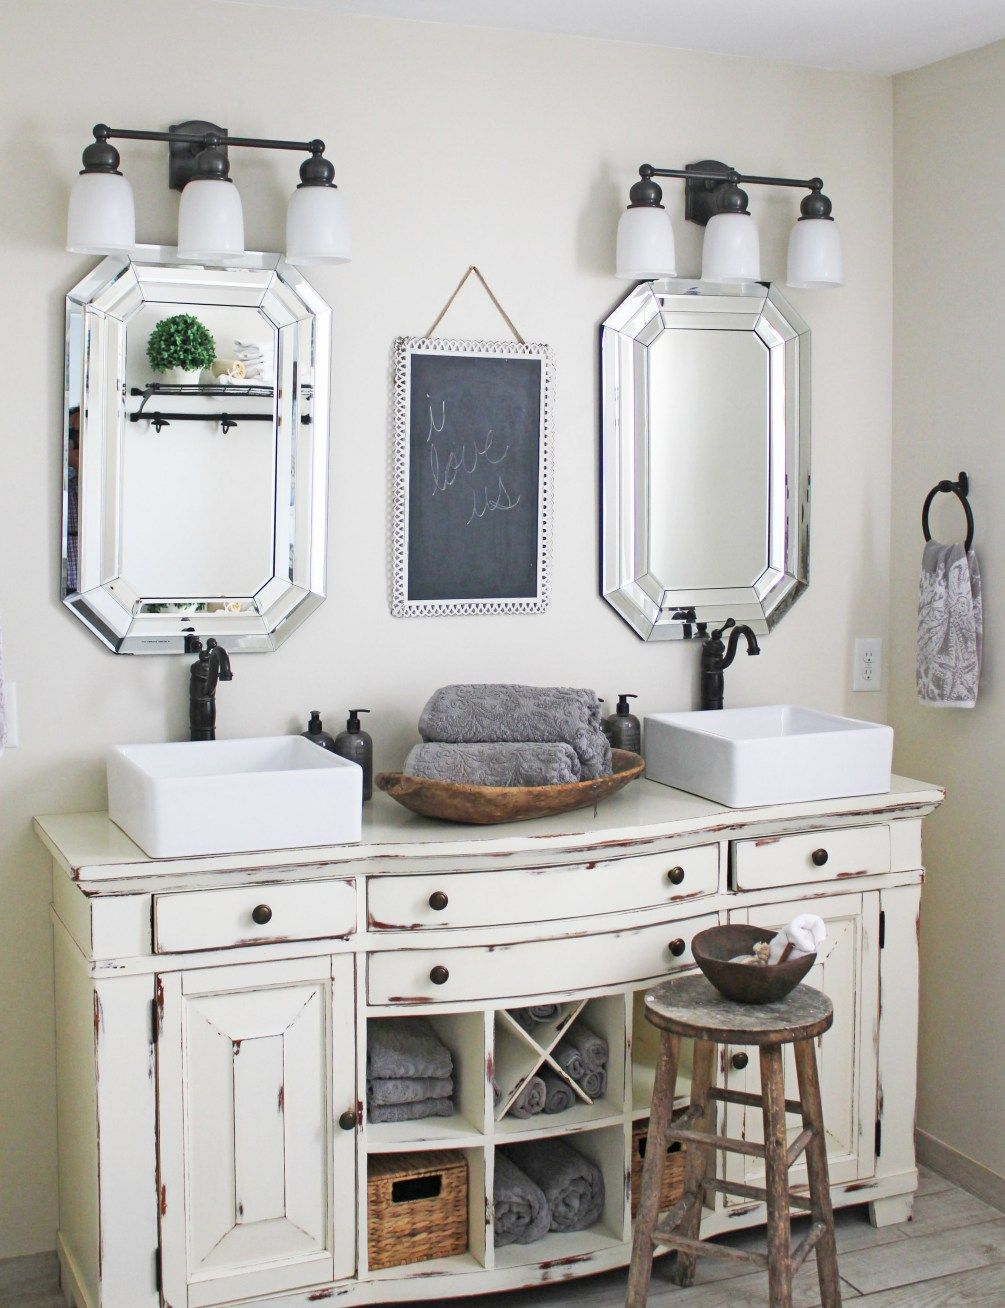 Master Bathroom Vanity From An Old Buffet | Shabby chic bathrooms ...